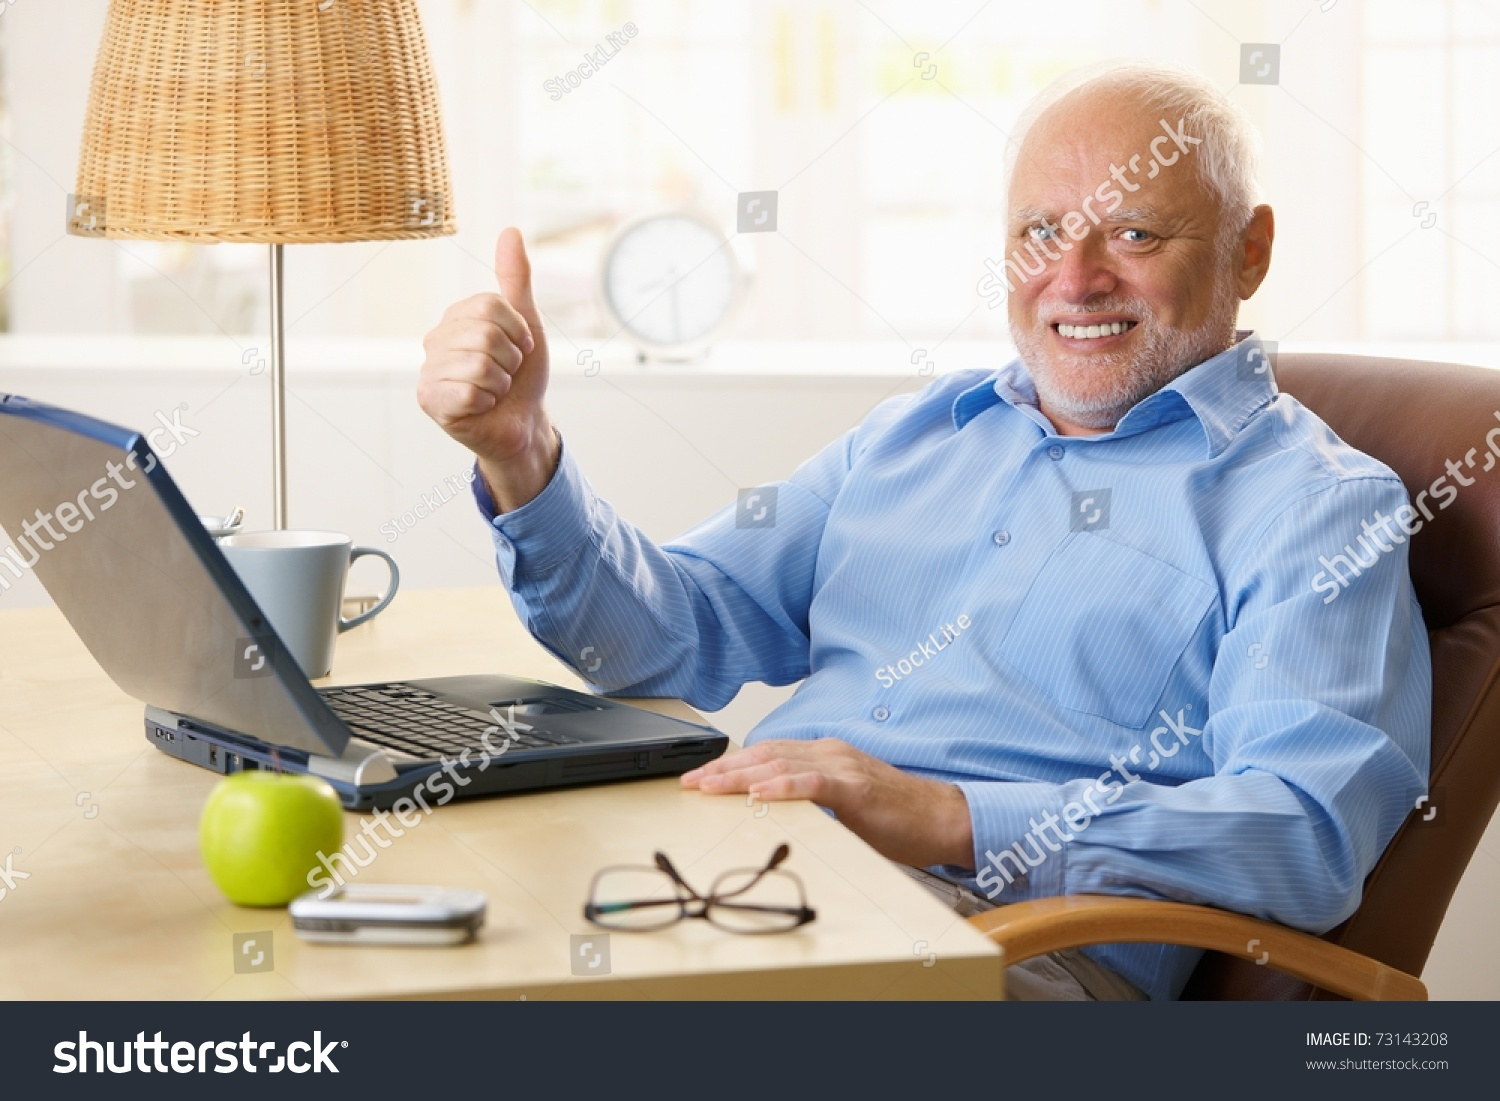 stock-photo-happy-senior-man-giving-thum